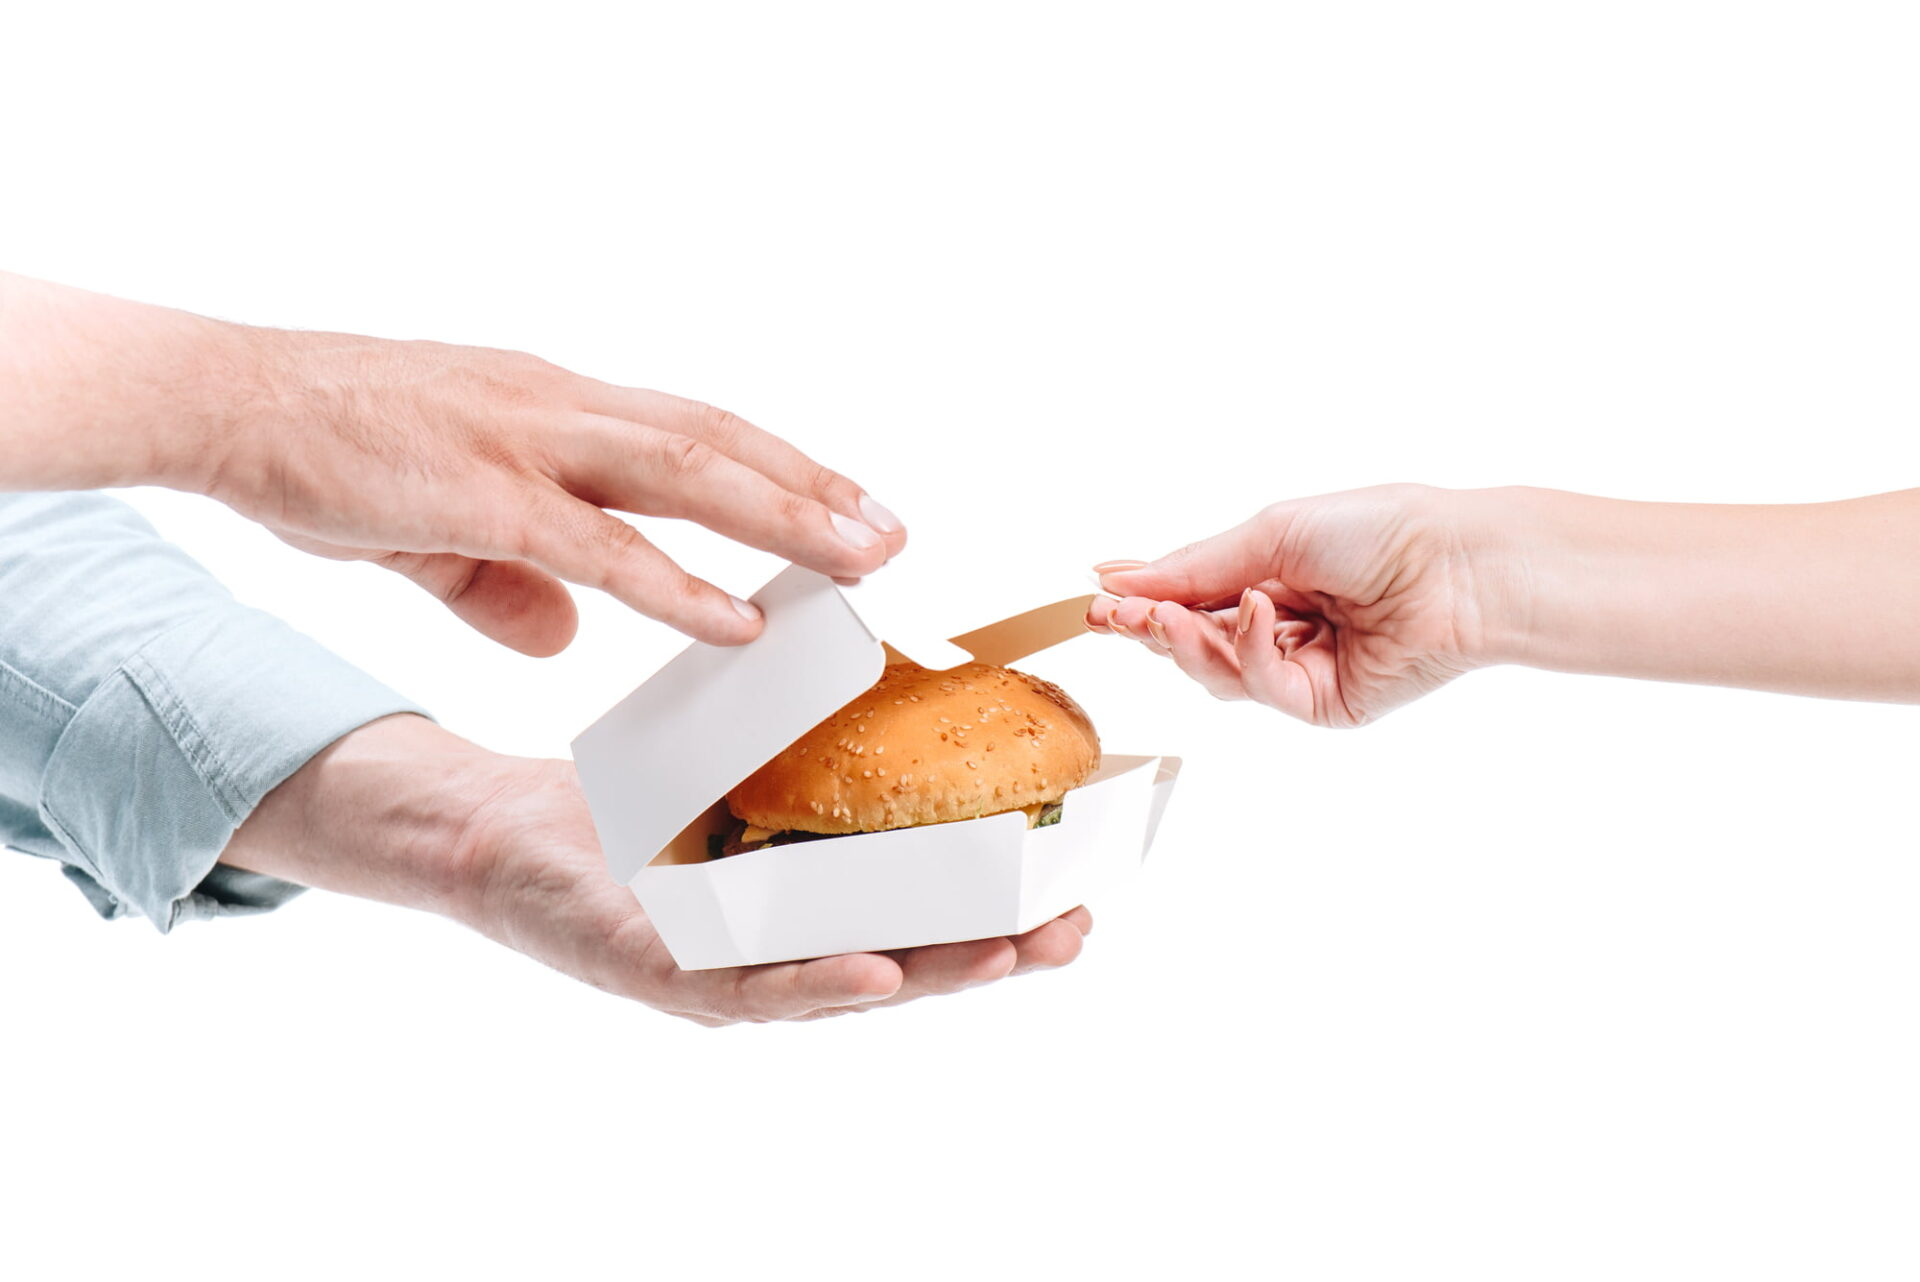 fast food packaging has PFAS chemicals